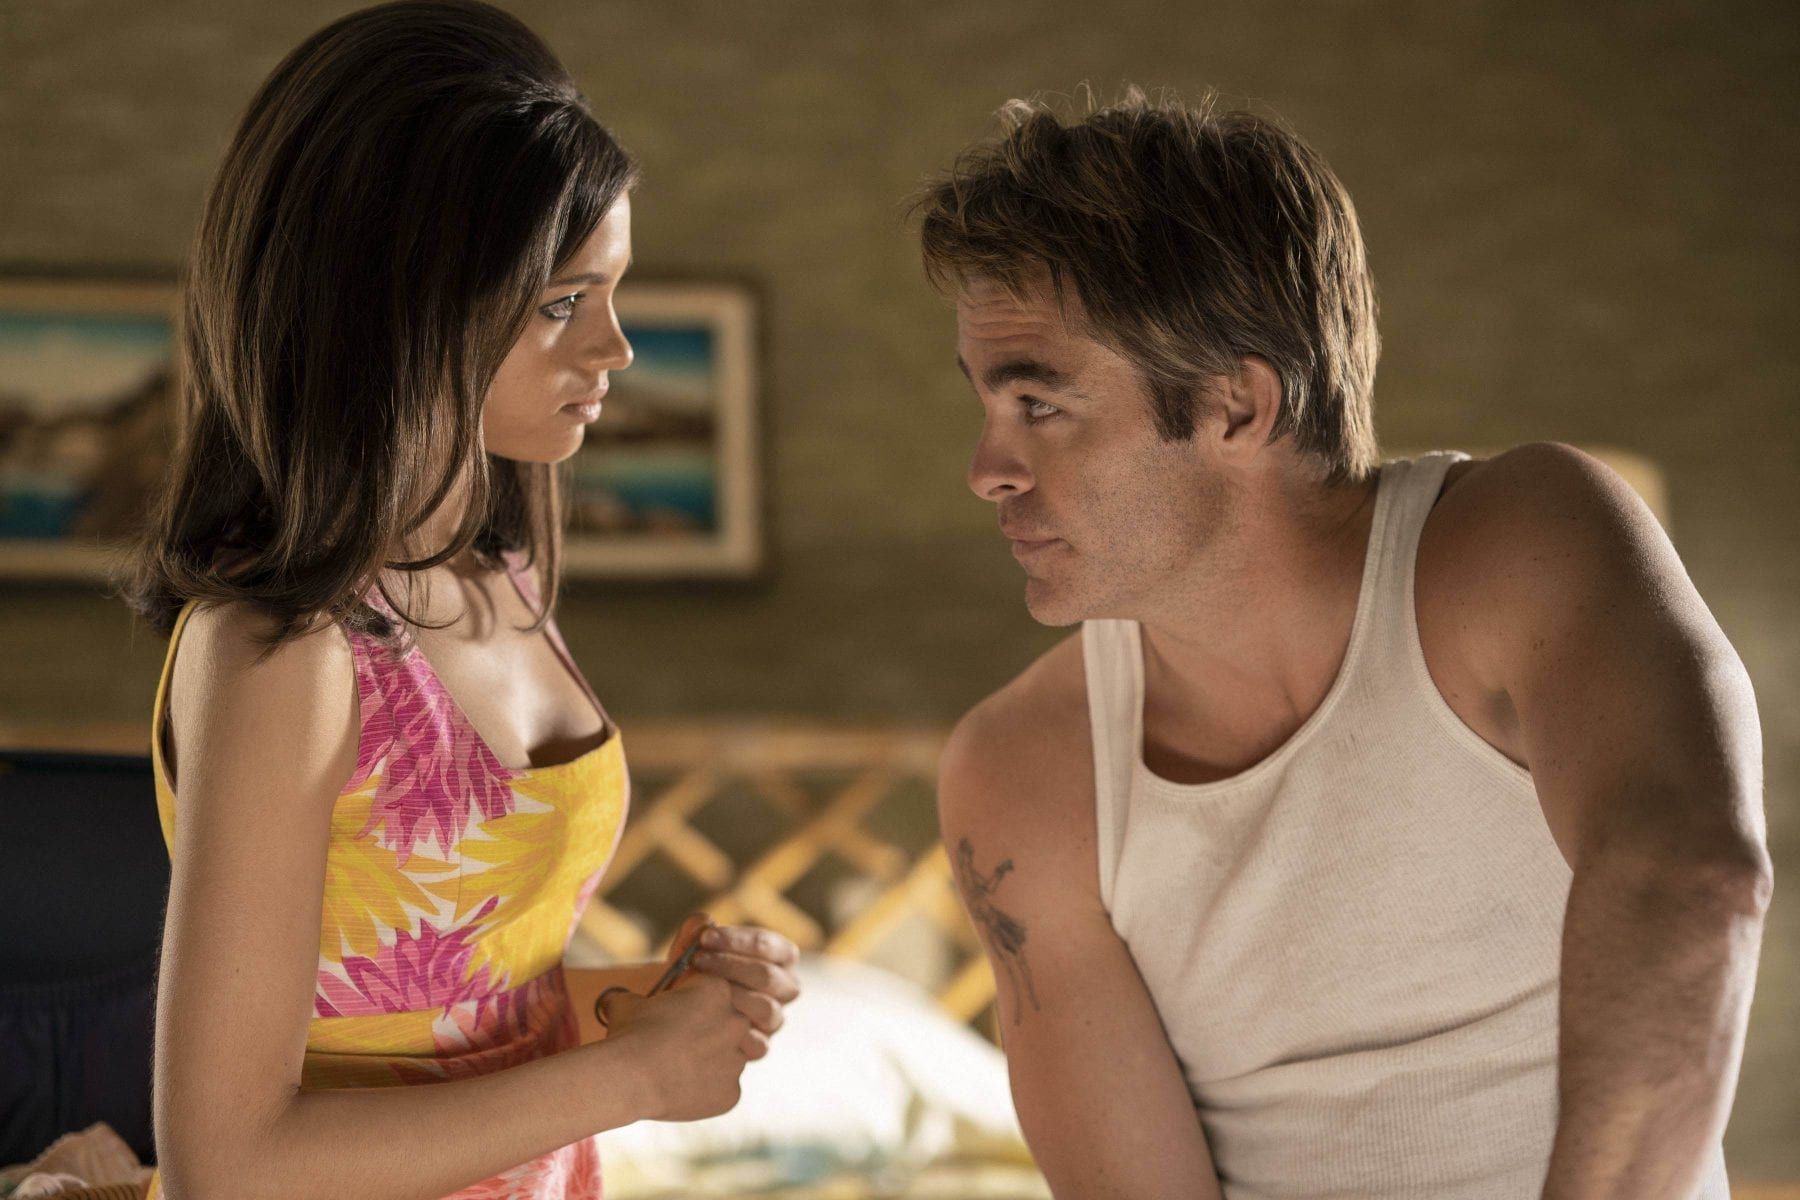 India Eisley and Chris Pine as Fauna Hodel and Jay Singletary interact in I Am the Night